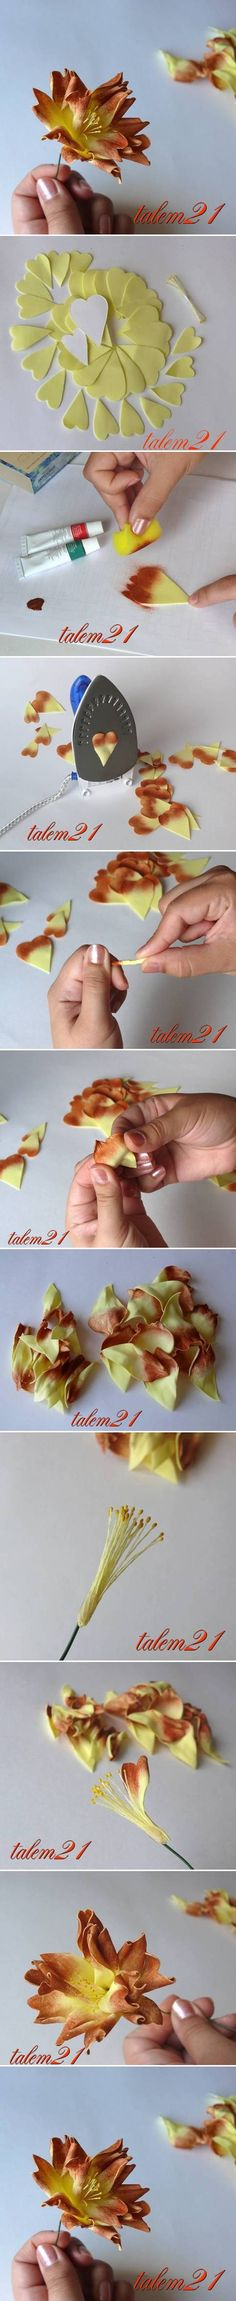 DIY Fantasy Flower DIY Projects | UsefulDIY.com Follow Us on Facebook ==> http://www.facebook.com/UsefulDiy